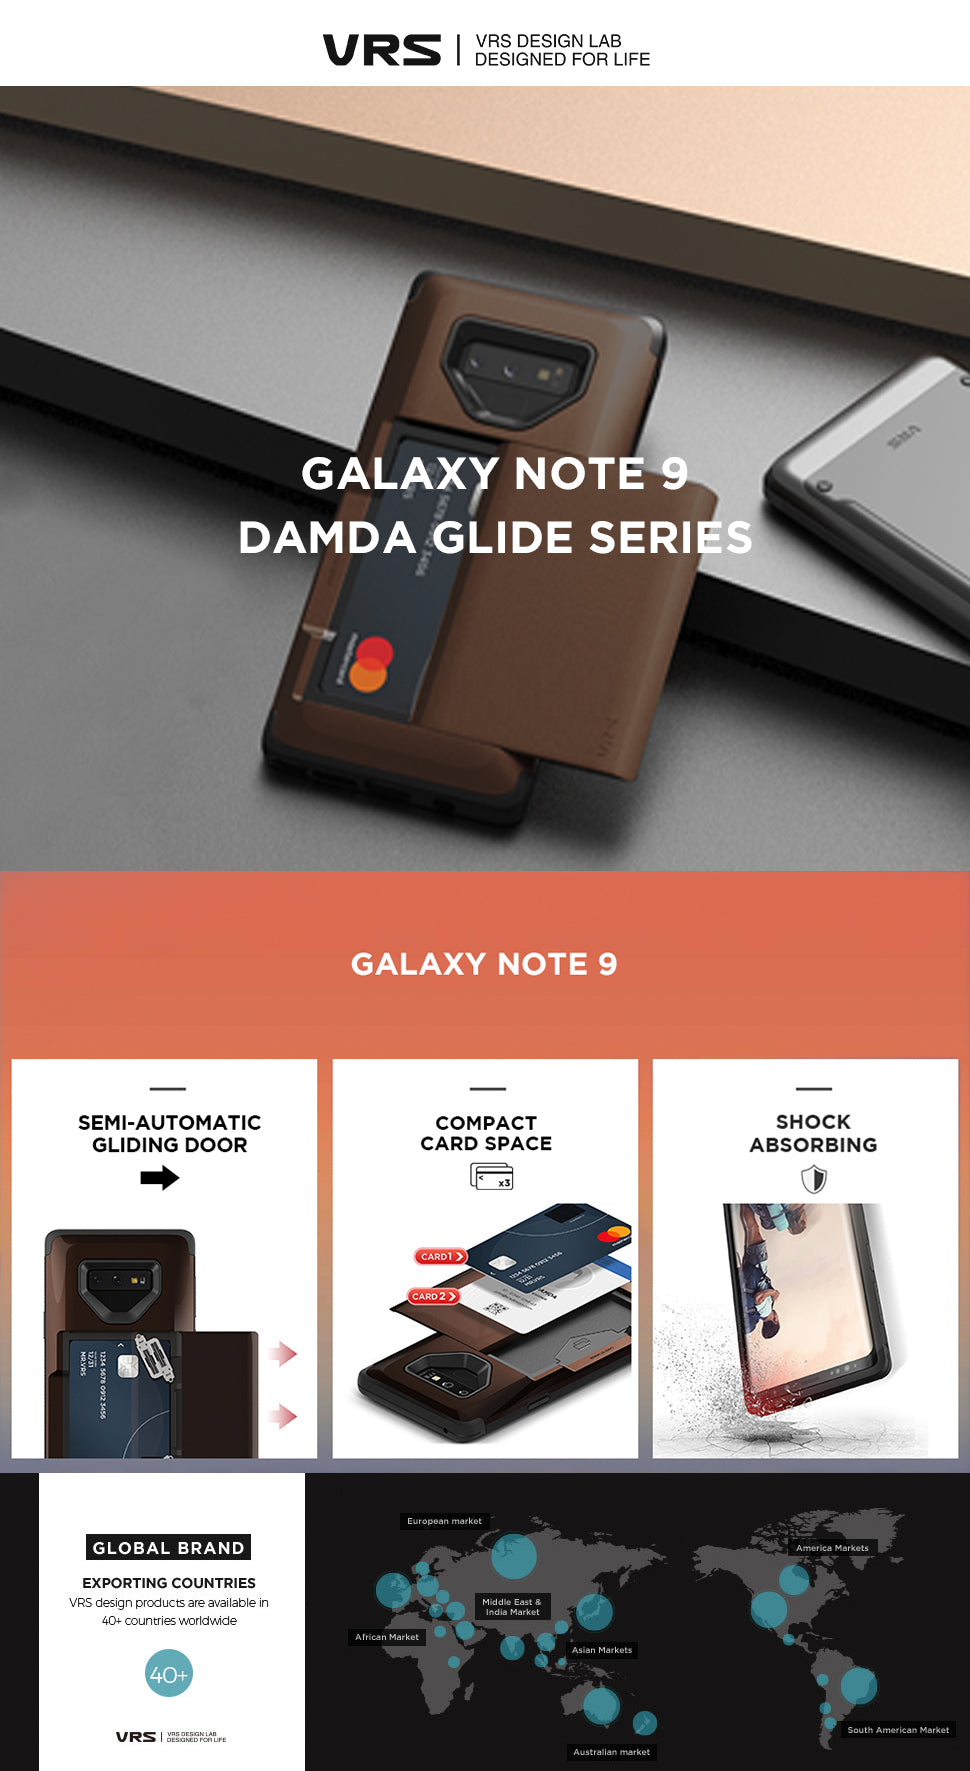 Best Compact Case for Galaxy Note 9 Damda Glide Series From VRS Design